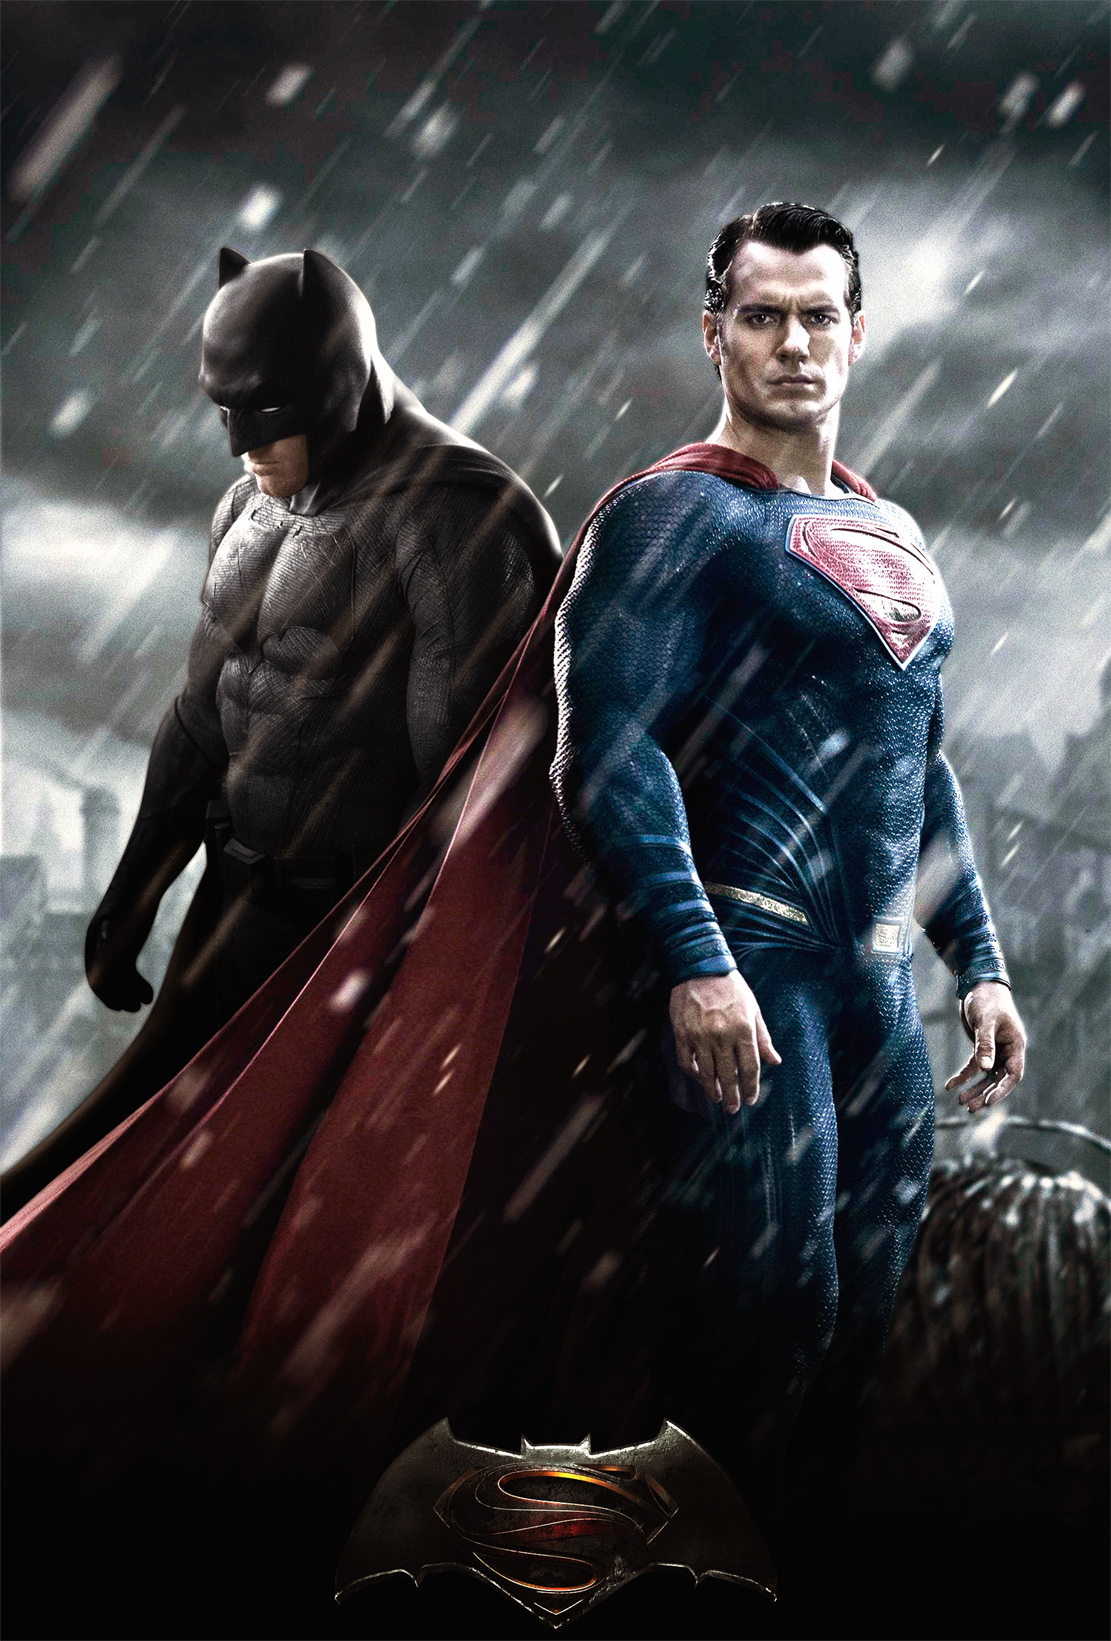 Batman vs superman wallpaper   SF Wallpaper 1111x1641